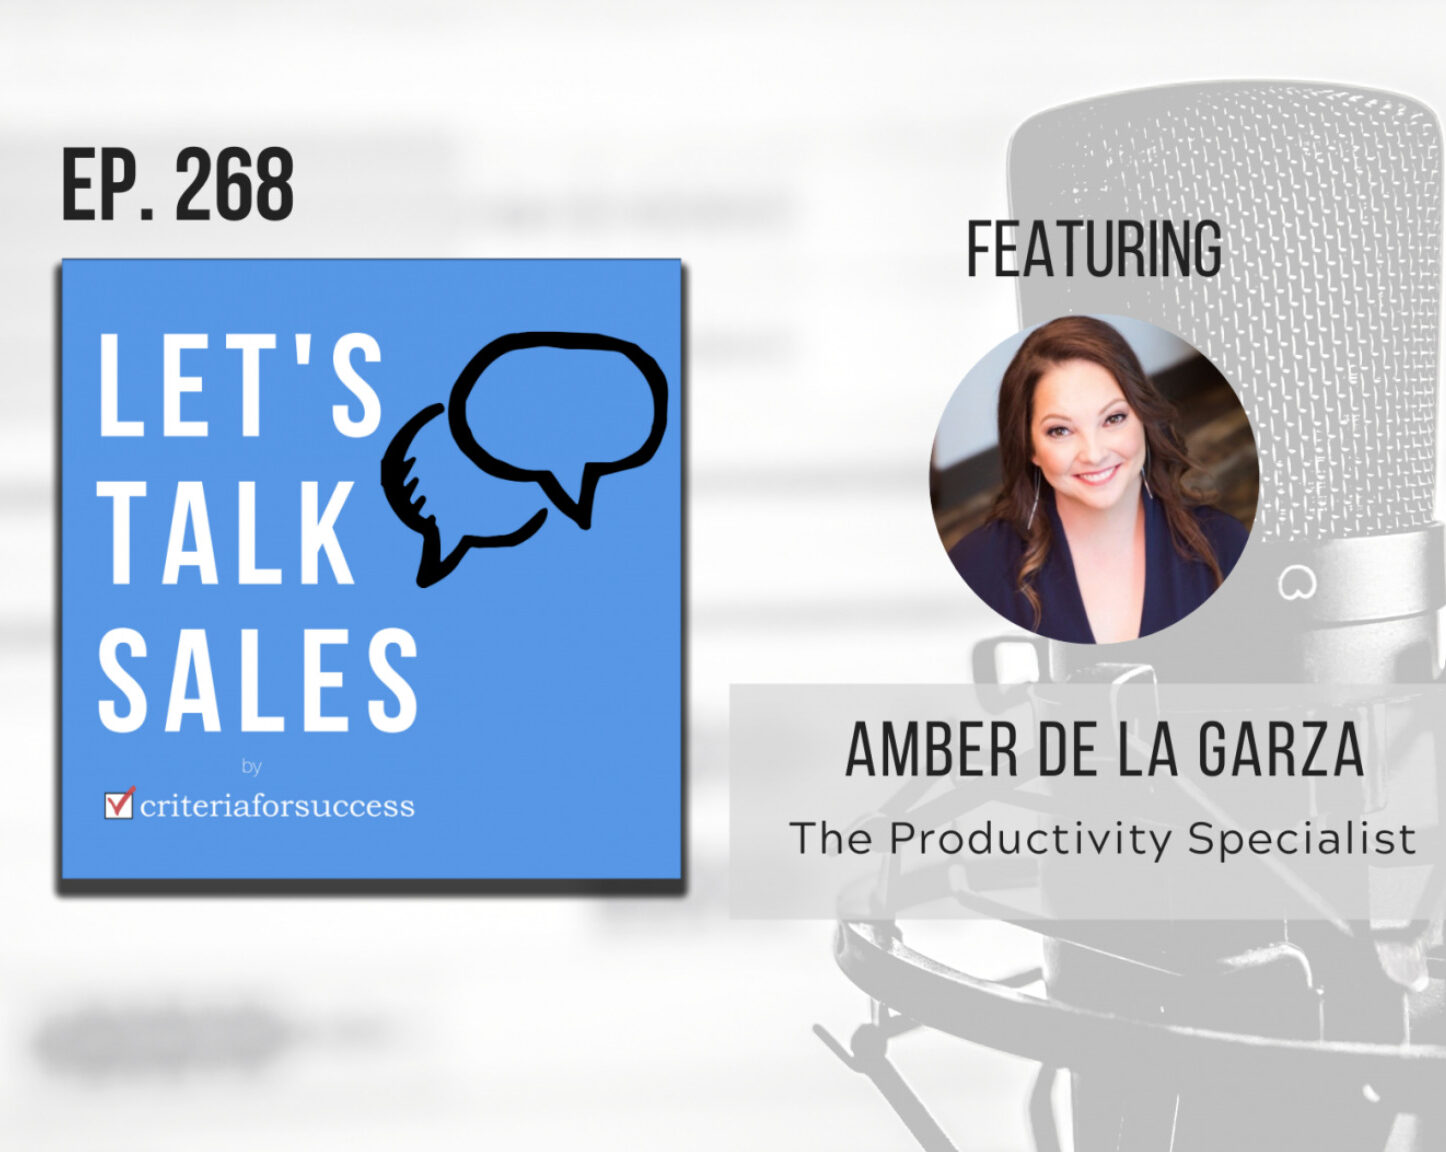 Let's Talk Sales by Criteria for Success 2